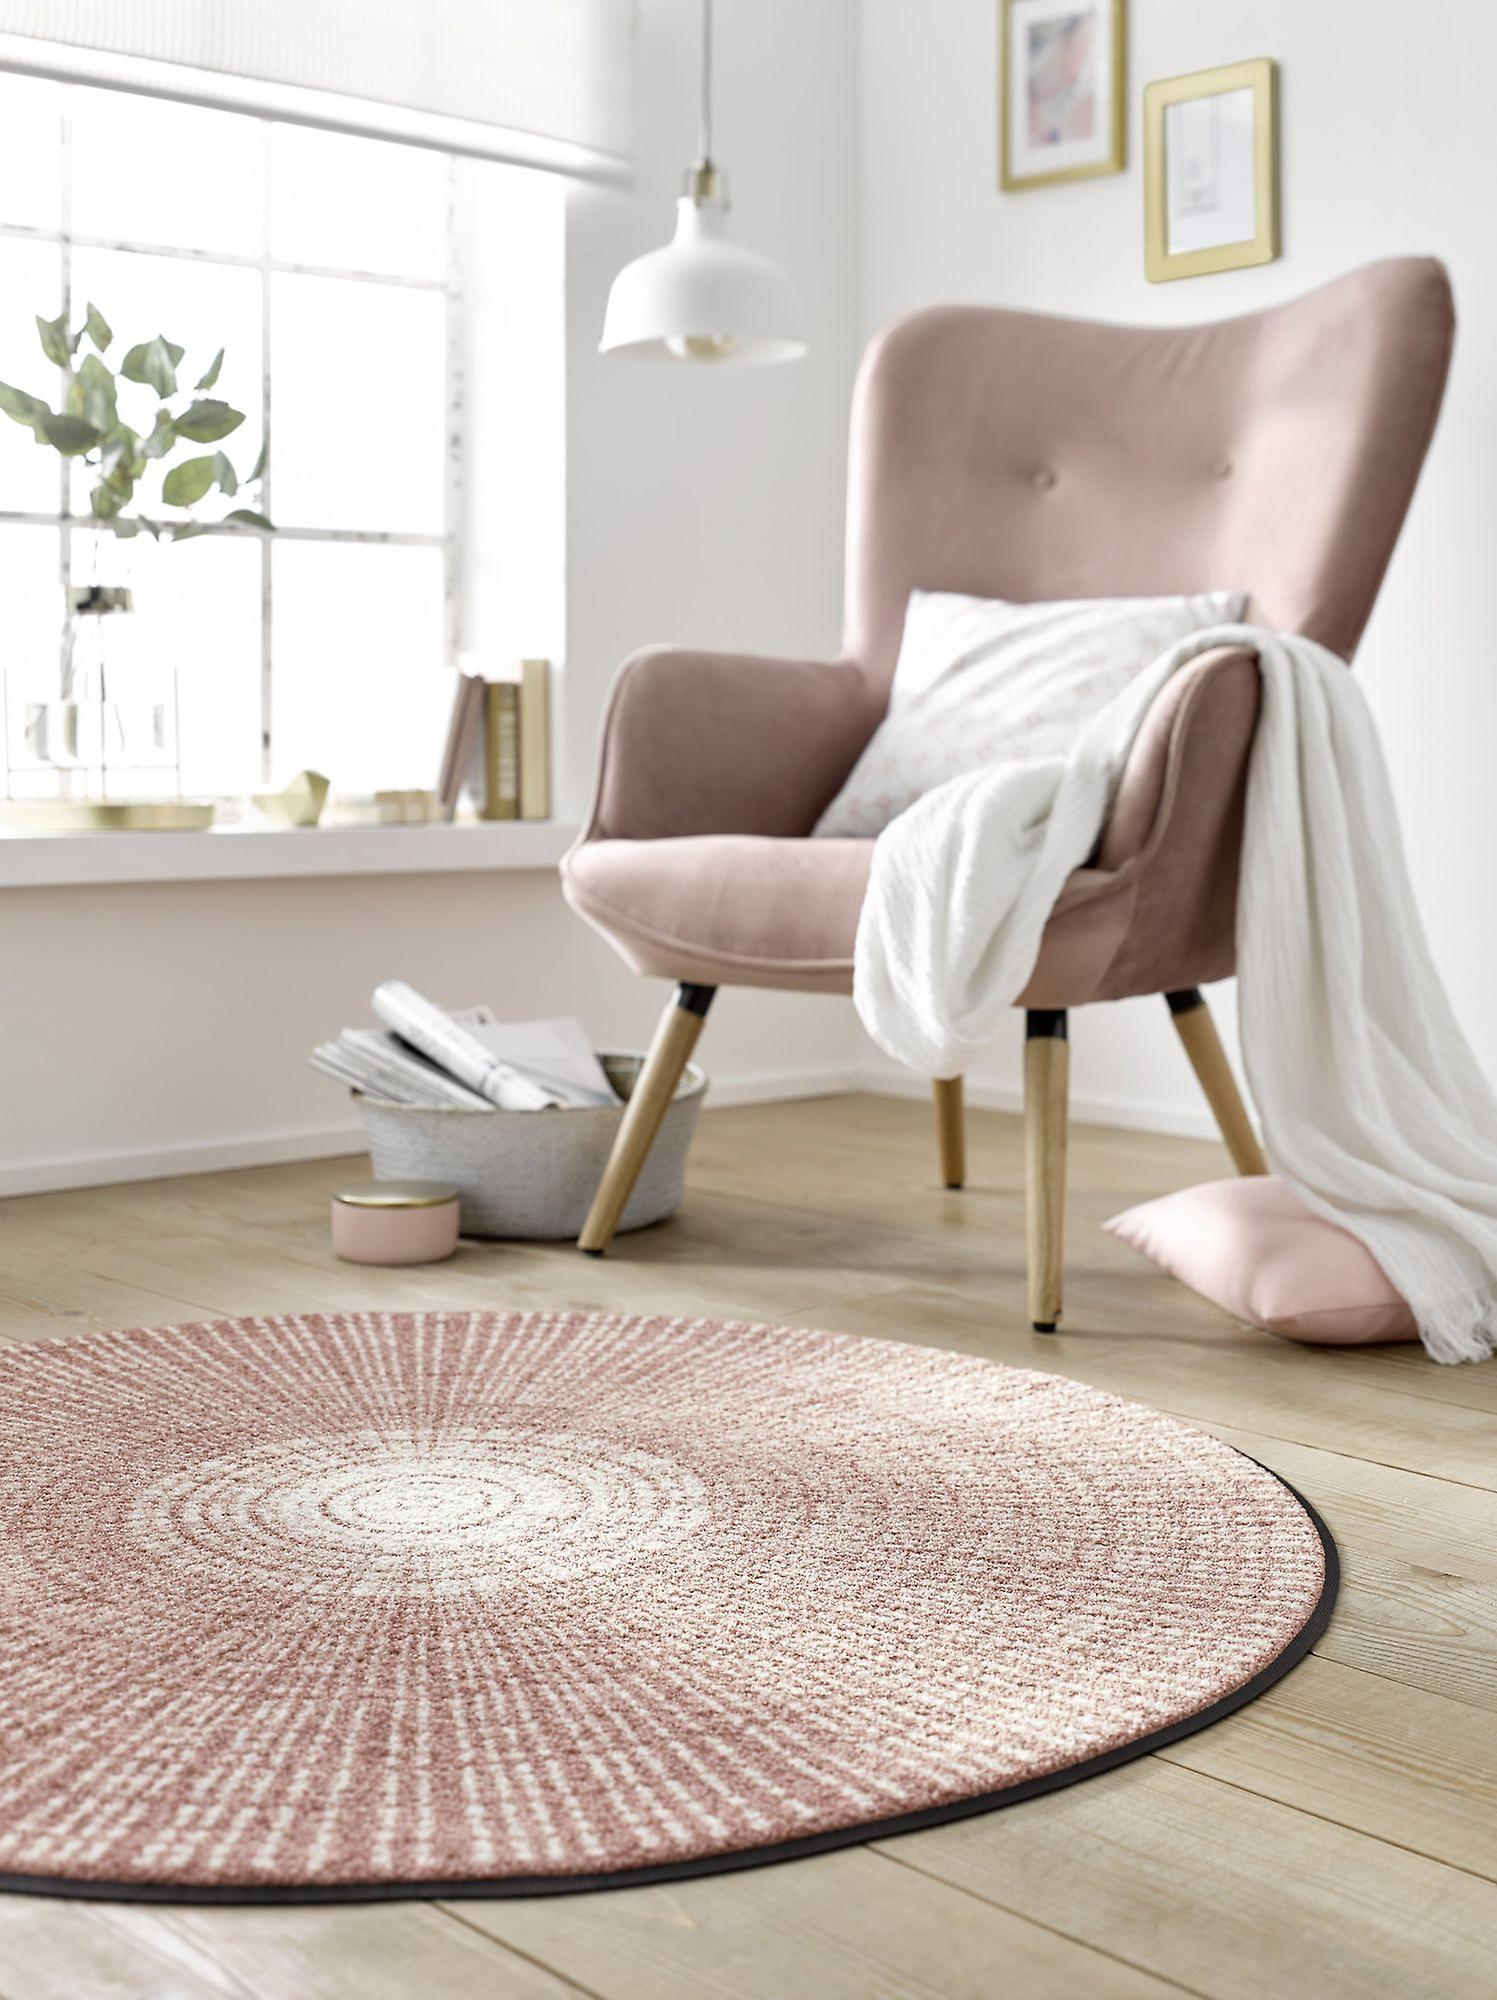 Round floor mat Cascara wash + dry powder washable dirt mat